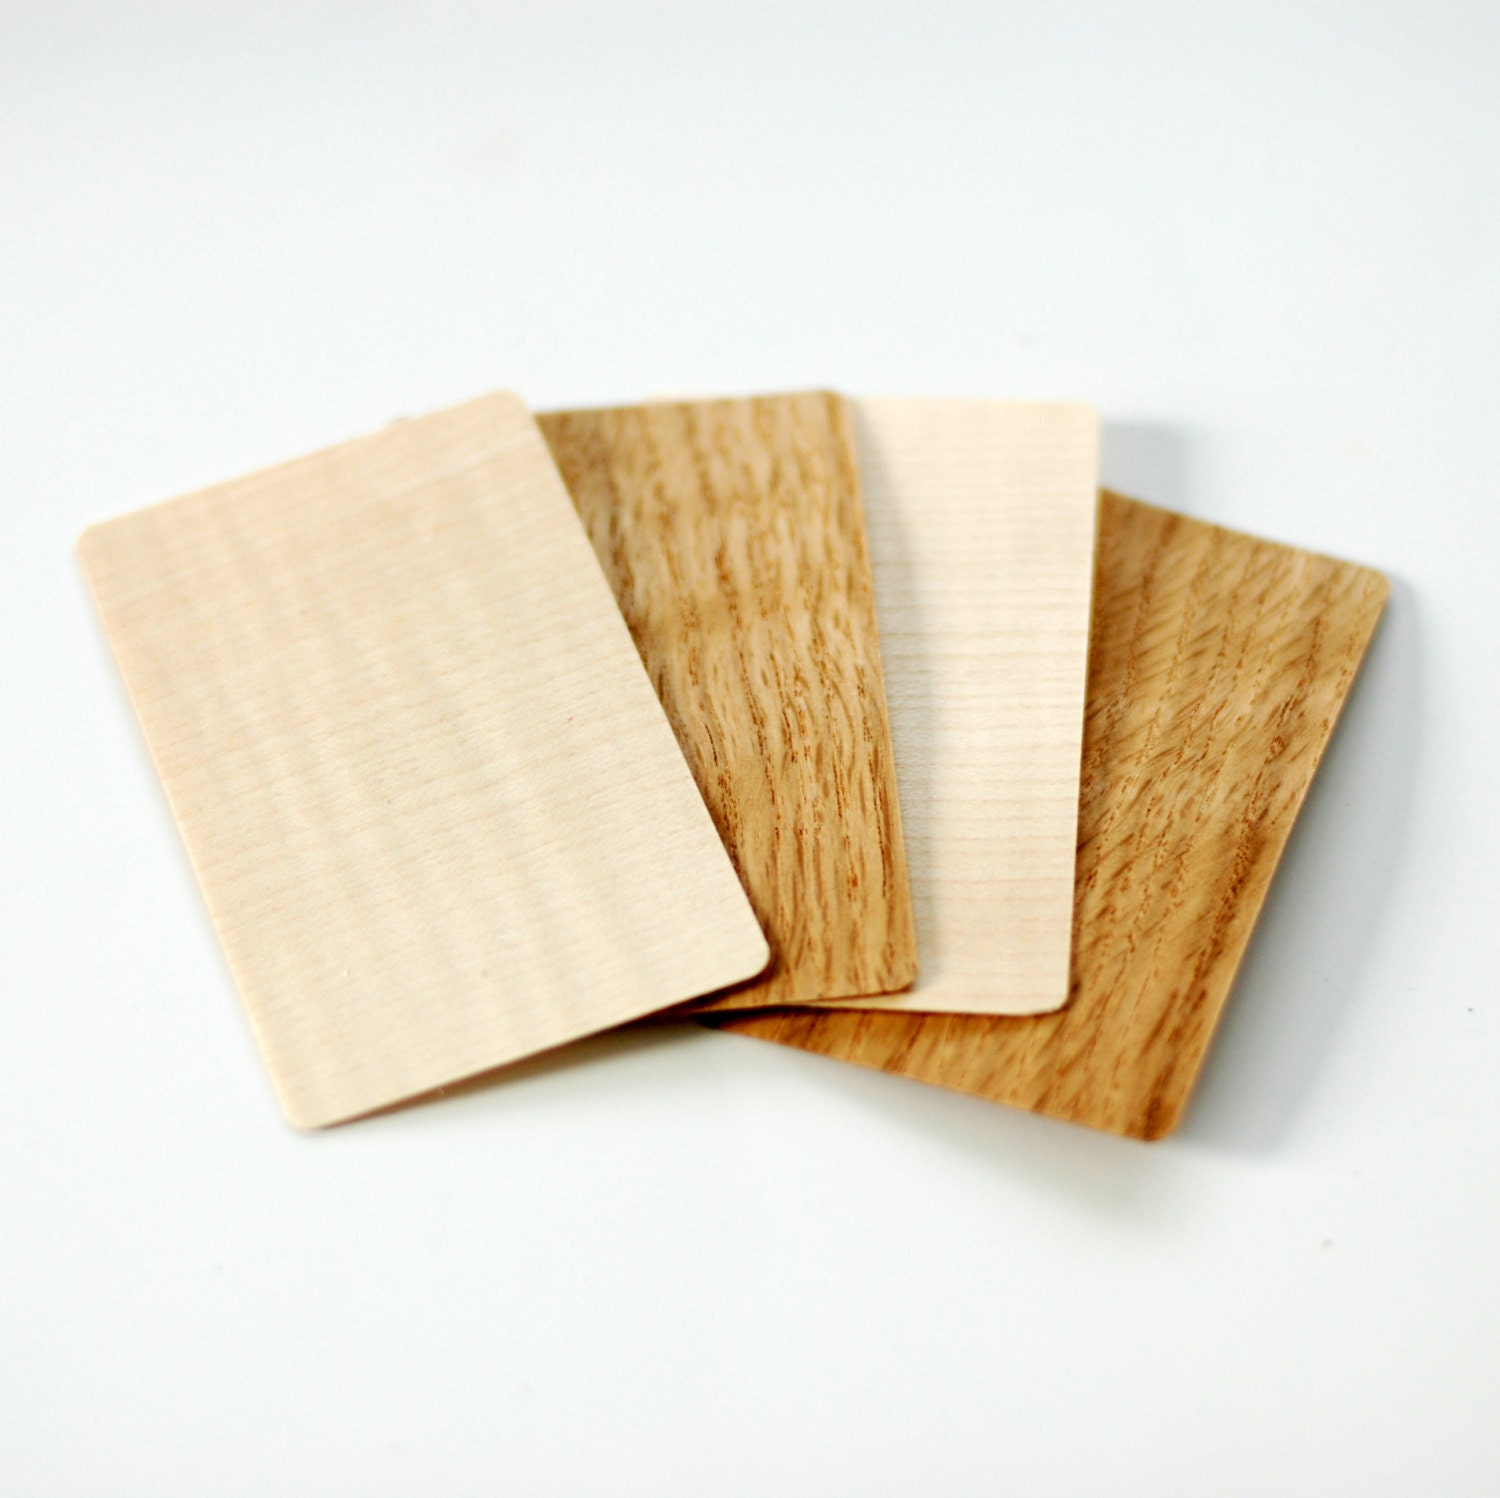 Wood business cards, Wooden business cards, Blank wood tags, Blank ...